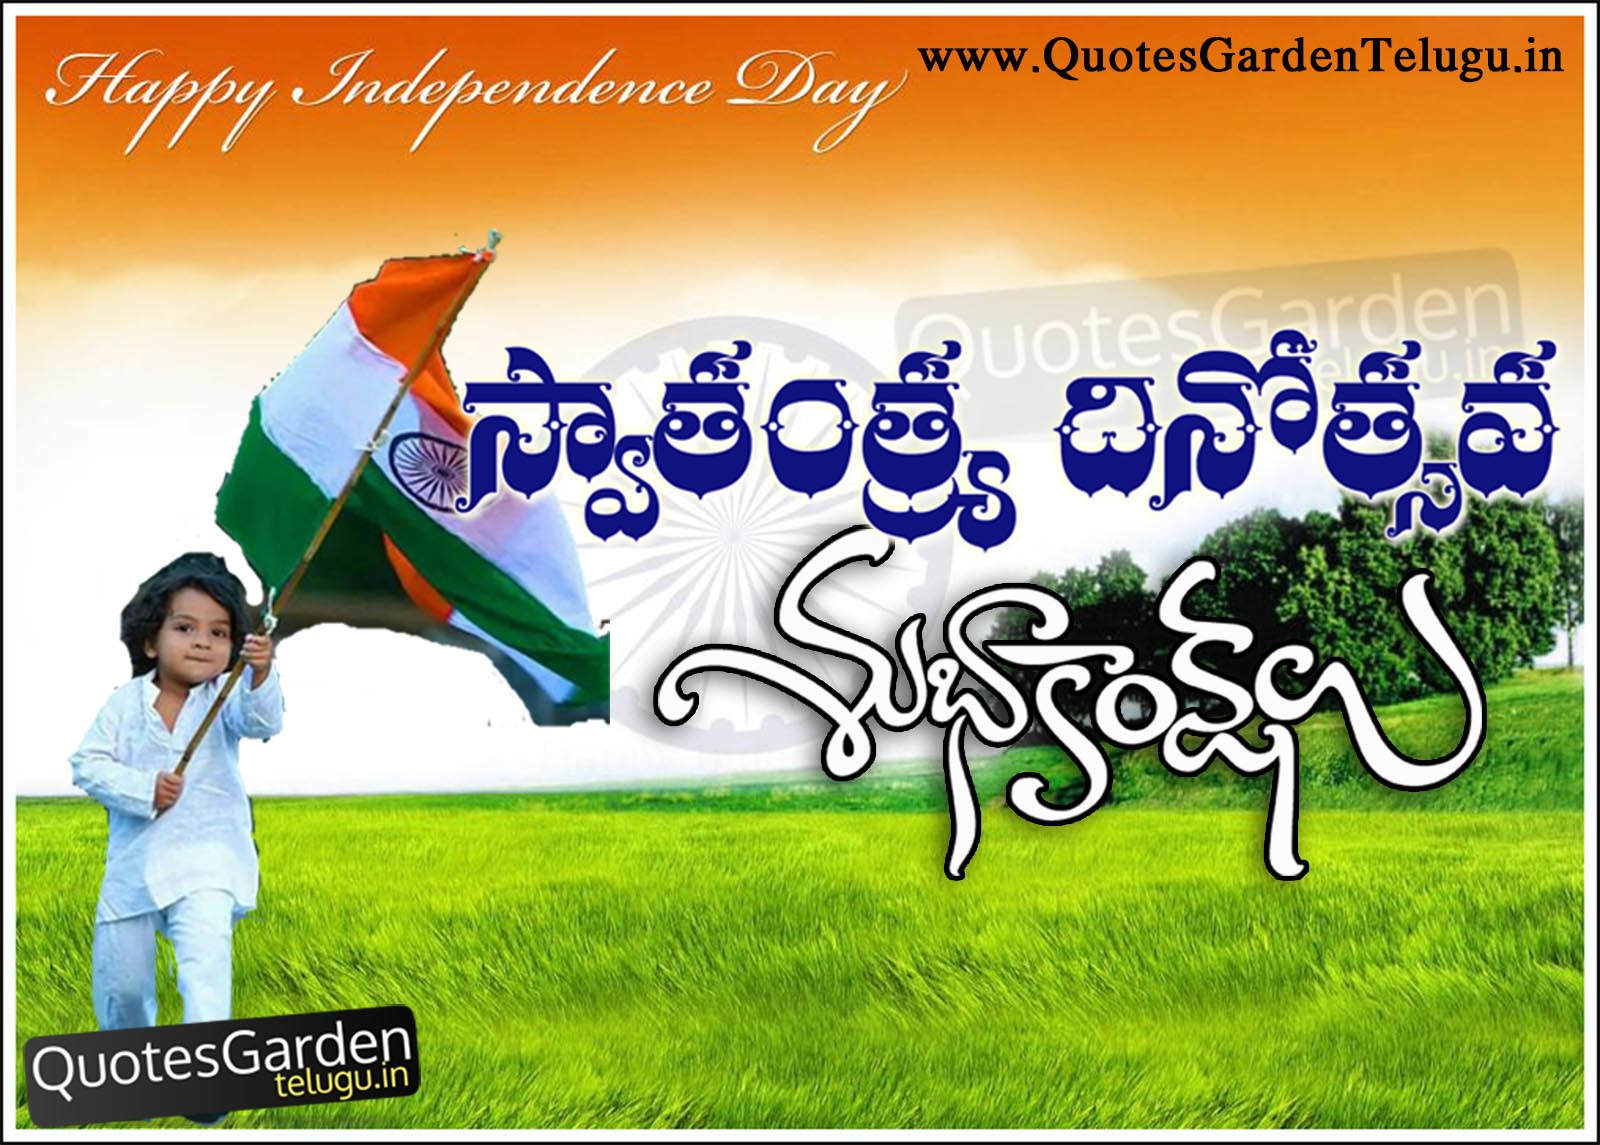 Latest independence day greetings in telugu quotes garden telugu 15th august independence day greetings in telugu kristyandbryce Gallery